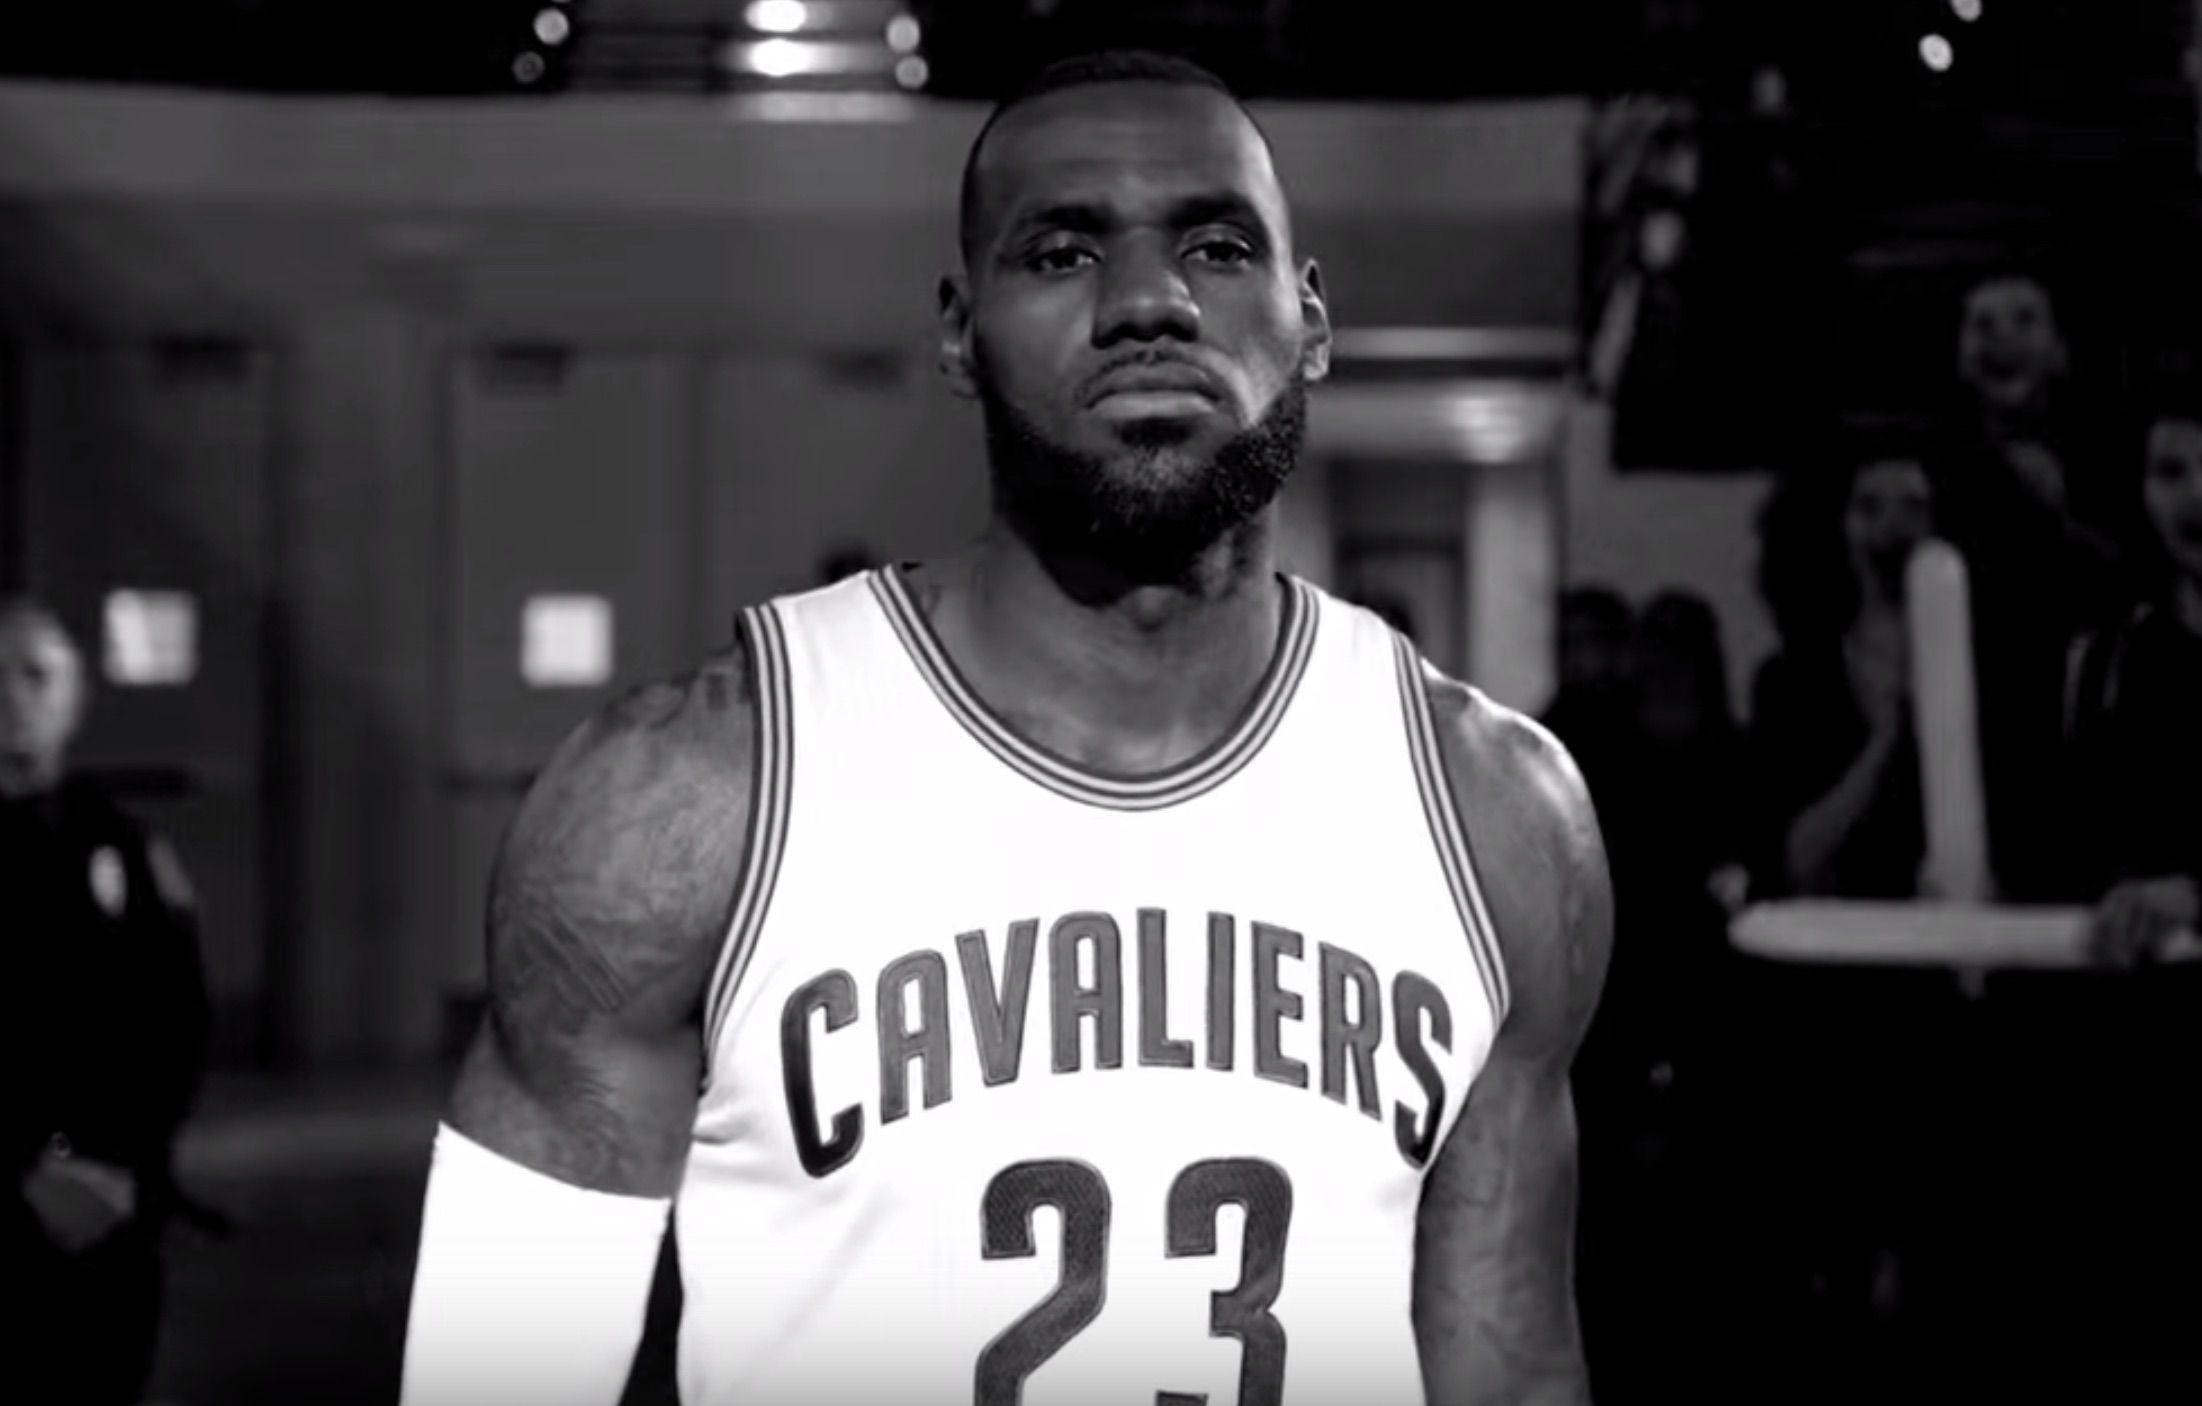 Nike's Newest LeBron James Commercial Is Giving Everyone